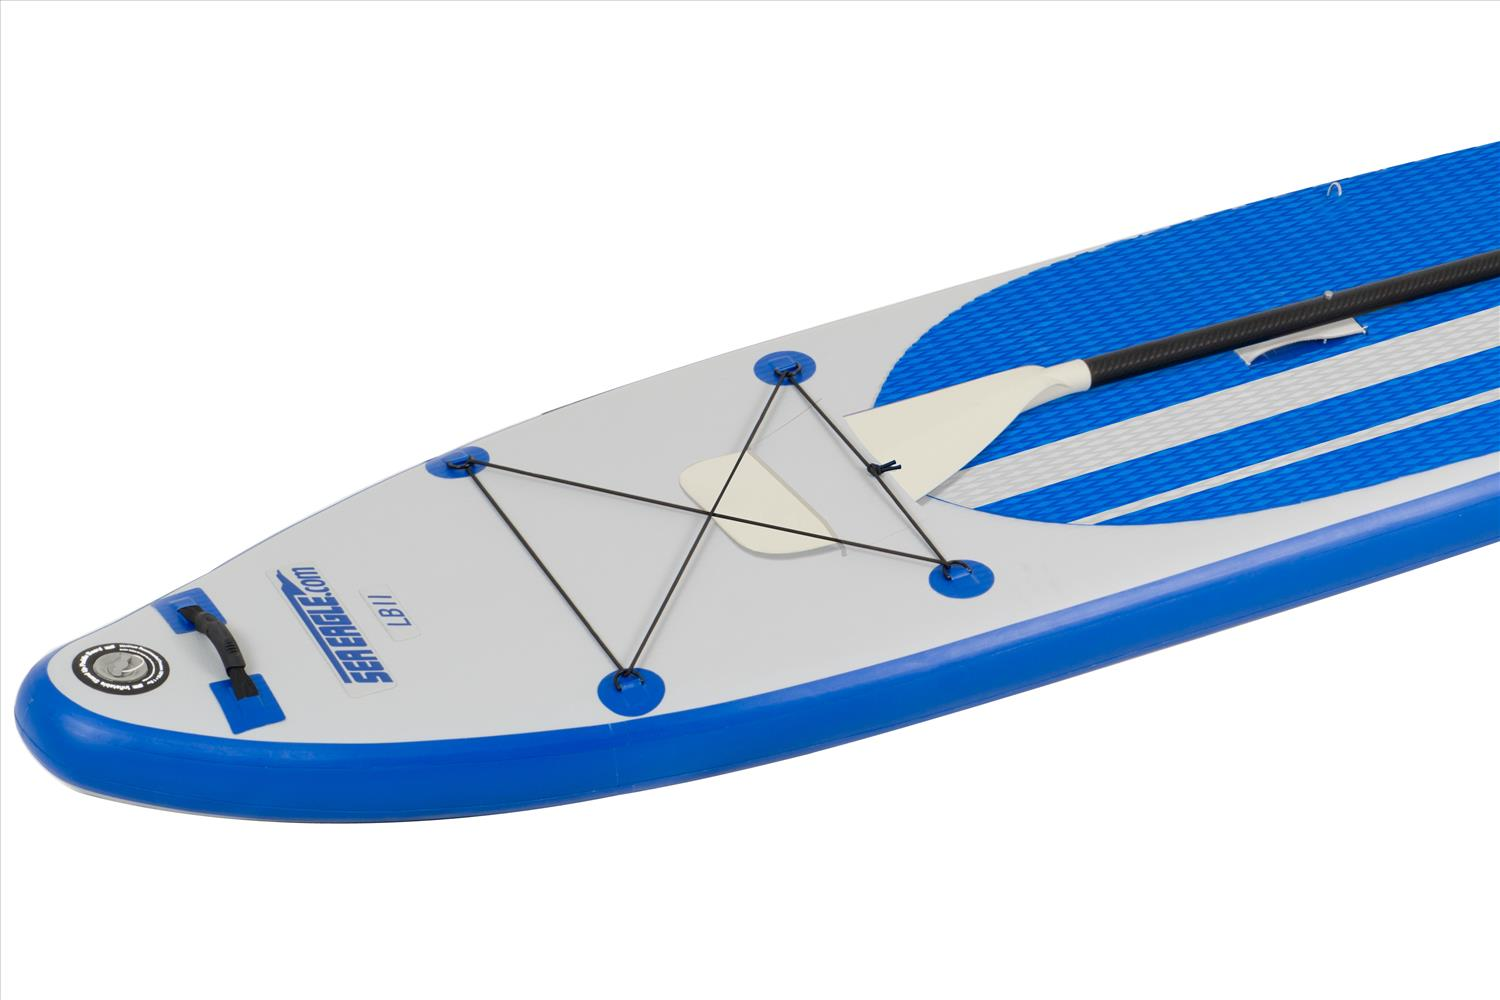 Sea Eagle Inflatable Stand Up Paddle Board Reviews